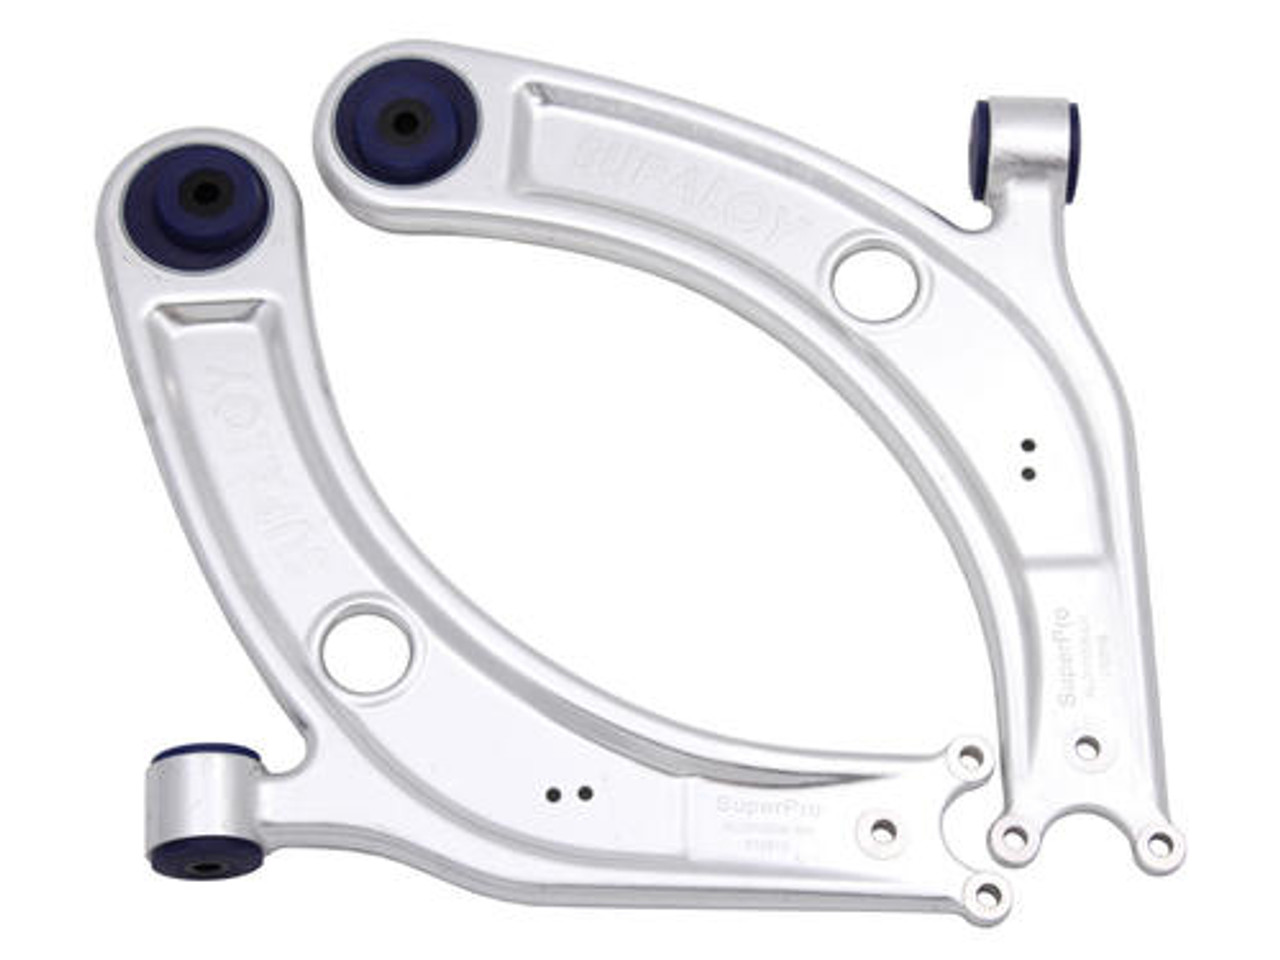 SuperPro Supaloy Arm Kit for MK7 Golf/GTI/R